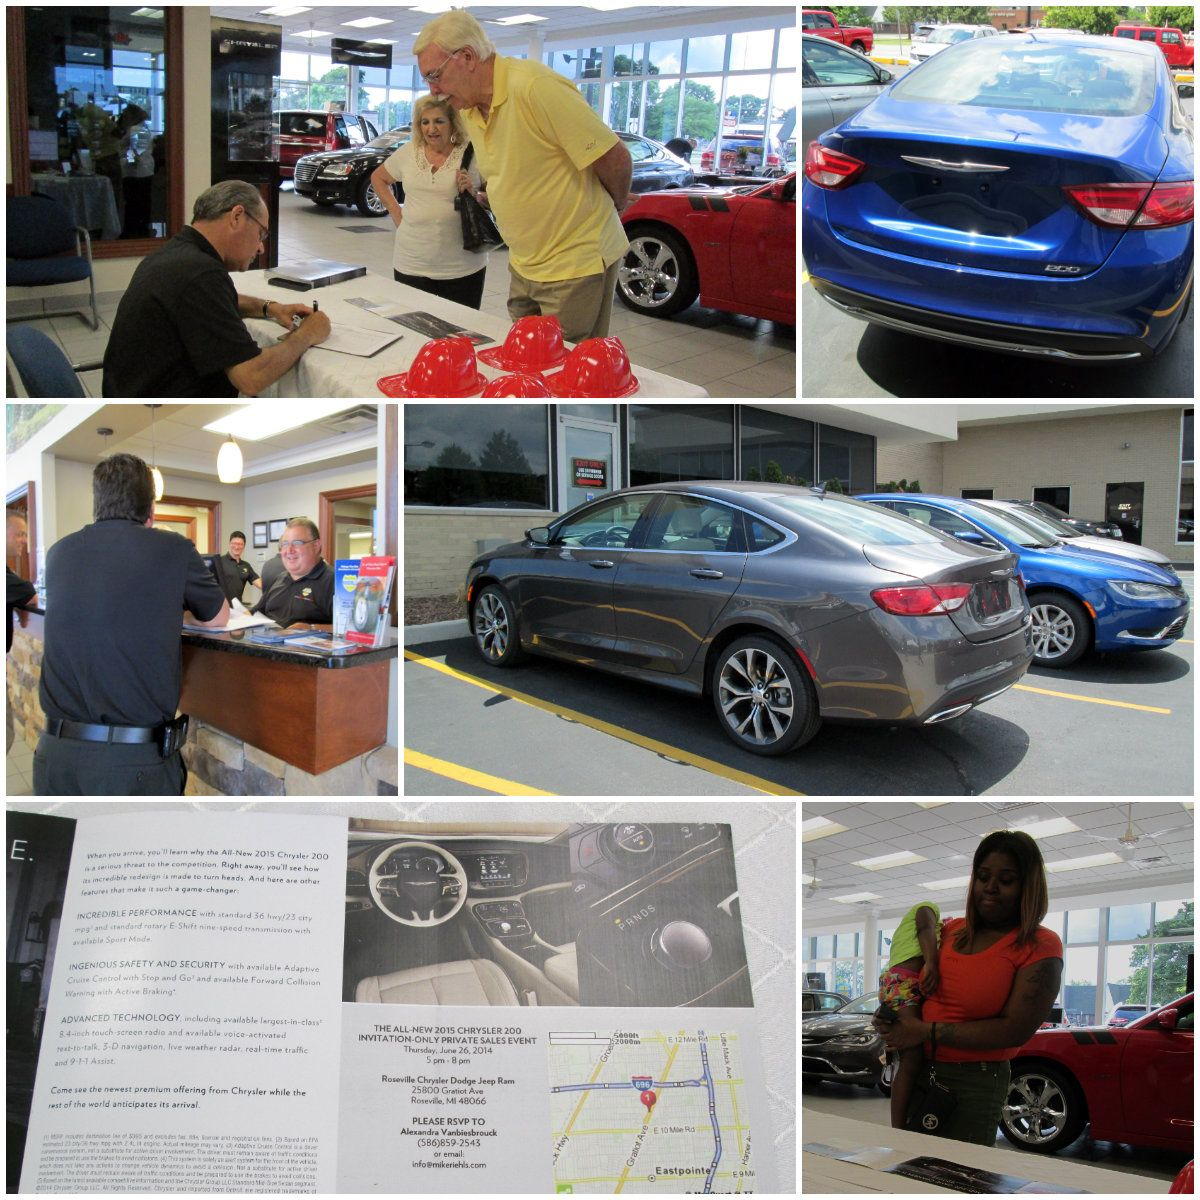 47th Anniversary Tent Sale And The 2015 Chrysler 200 Invitation